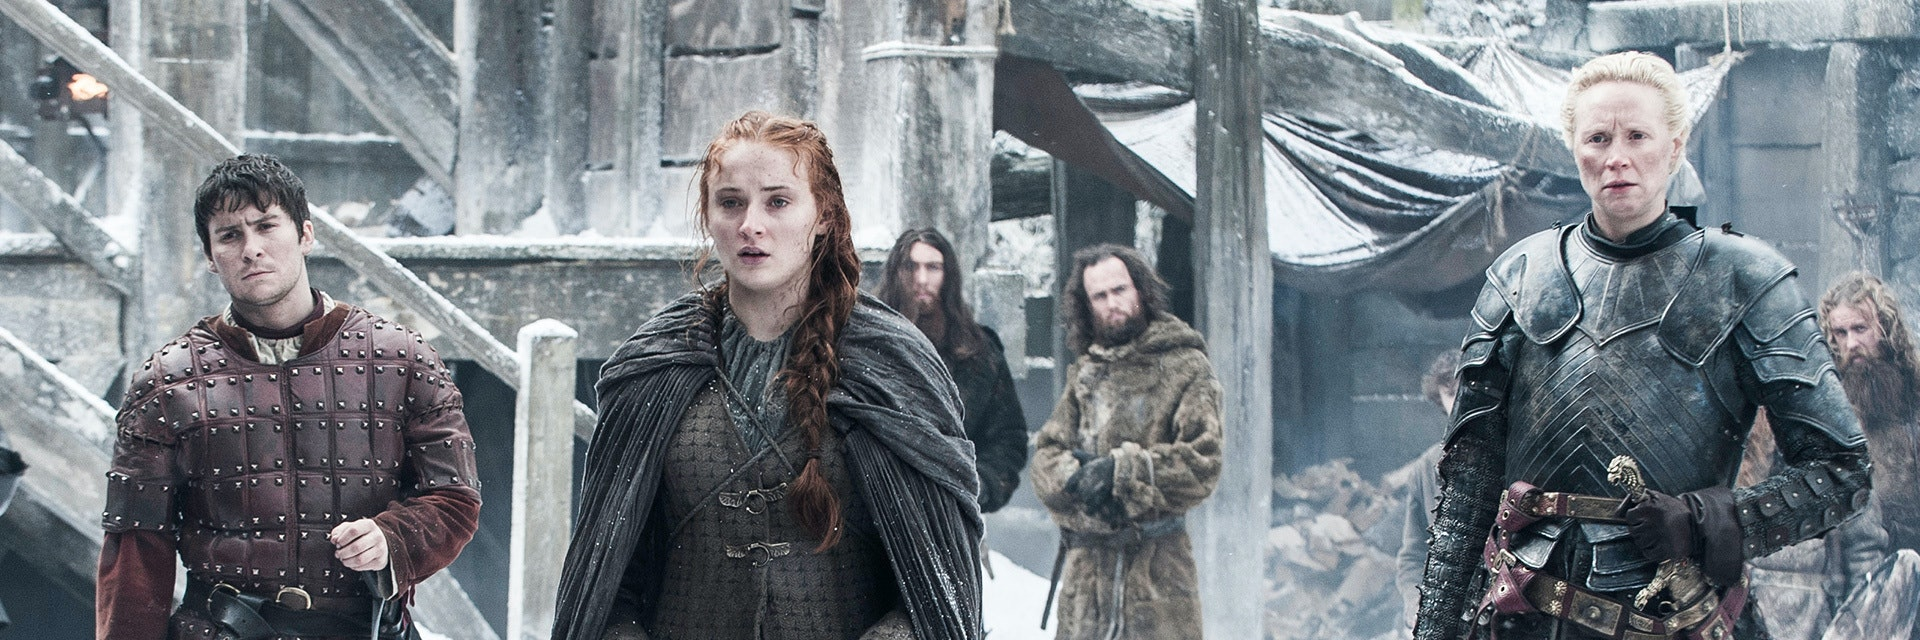 Sophie Turner and Gwendoline Christine in 'Game of Thrones'